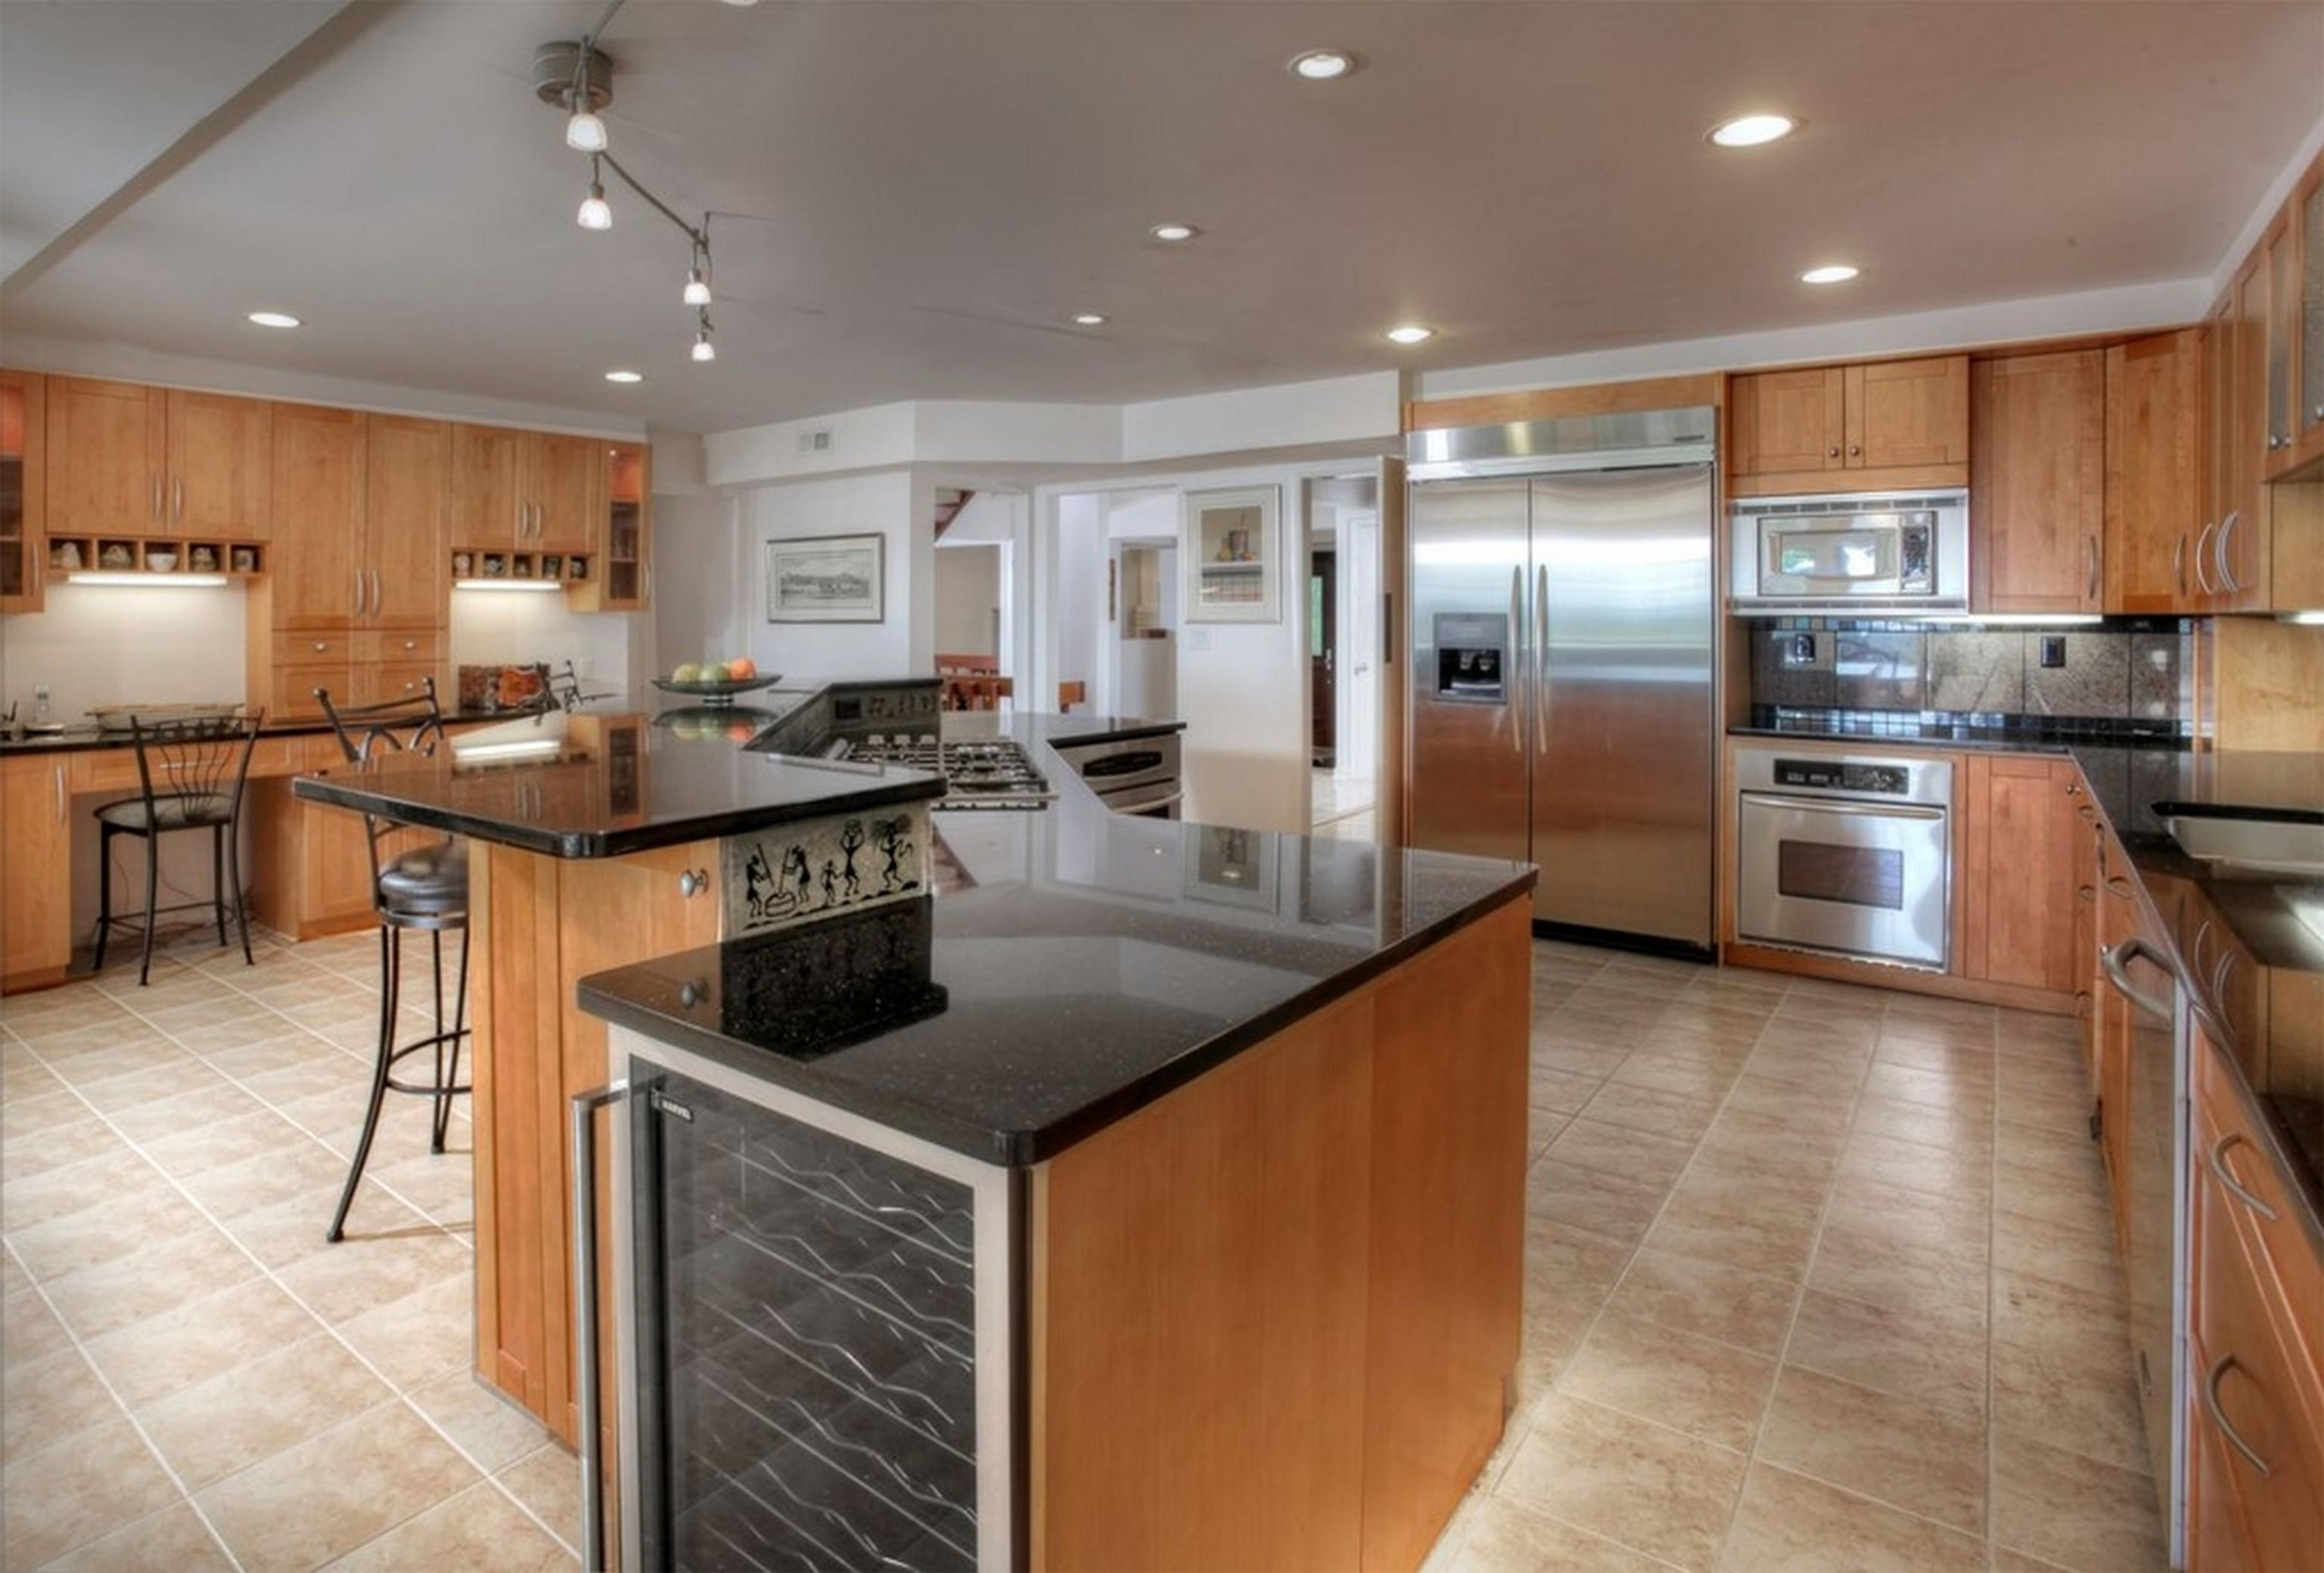 Kitchen Rustic Blue High Ceiling Shaped